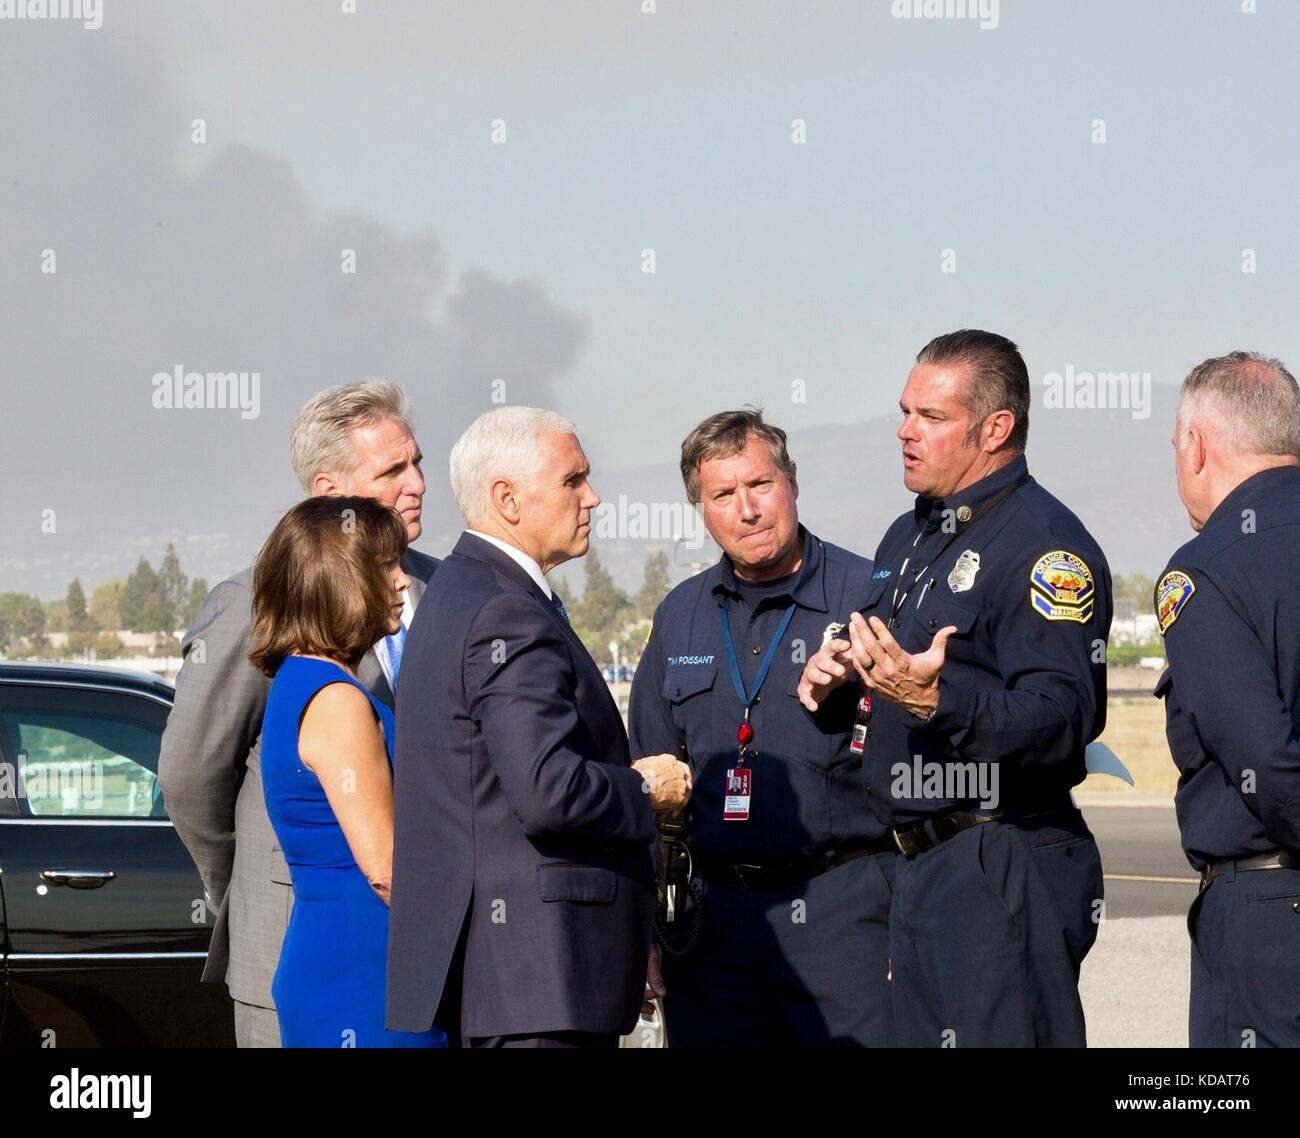 U.S. Vice President Mike Pence, Karen Pence and House Majority Leader Kevin McCarthy, left, speak with firefighters - Stock Image